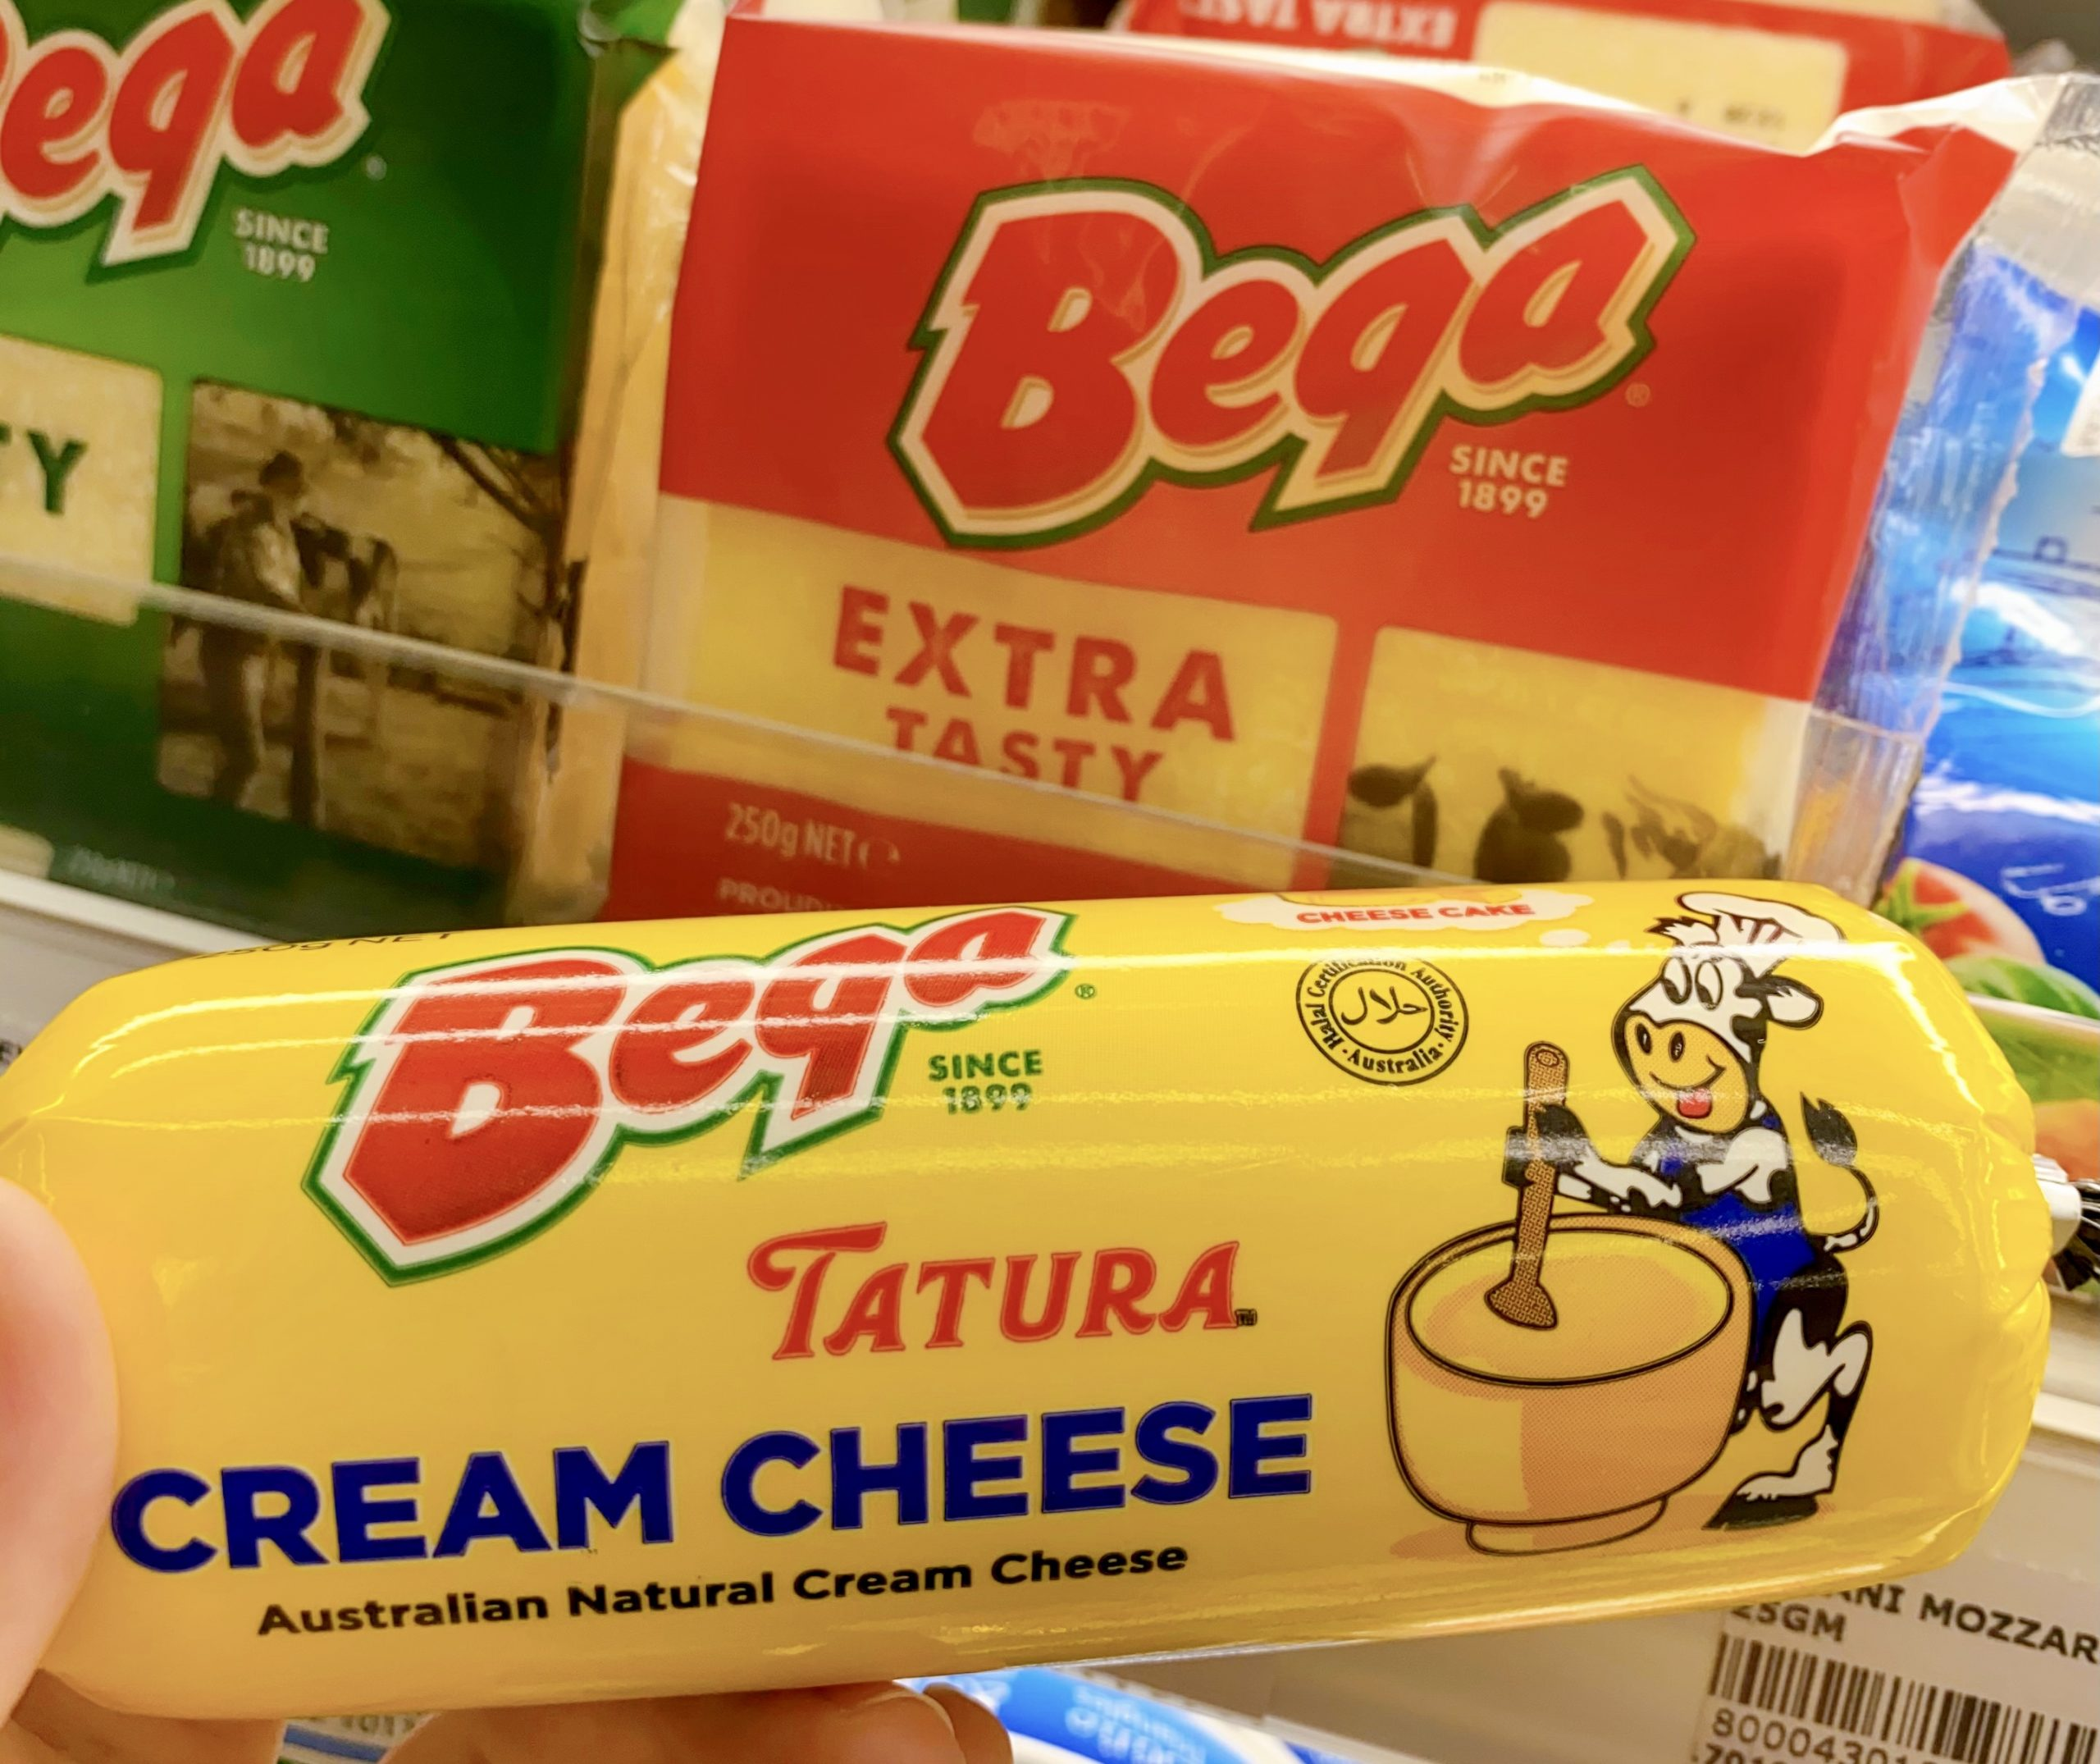 tatura cream cheese beqa extra tasty